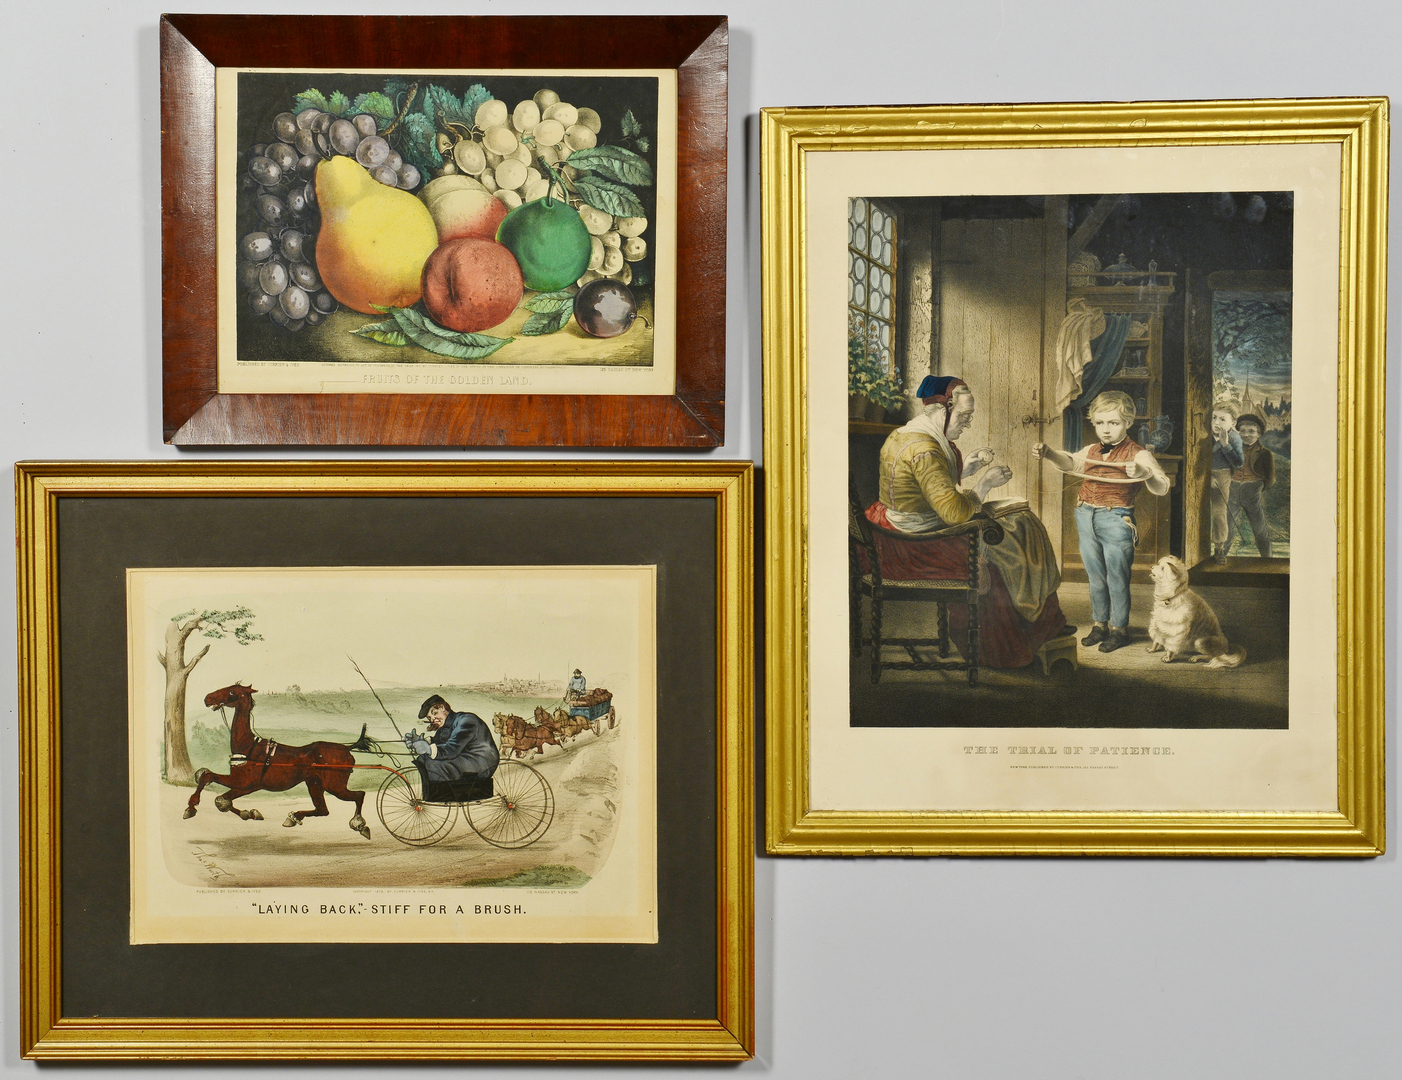 Lot 3088184: 3 Currier & Ives Lithographs